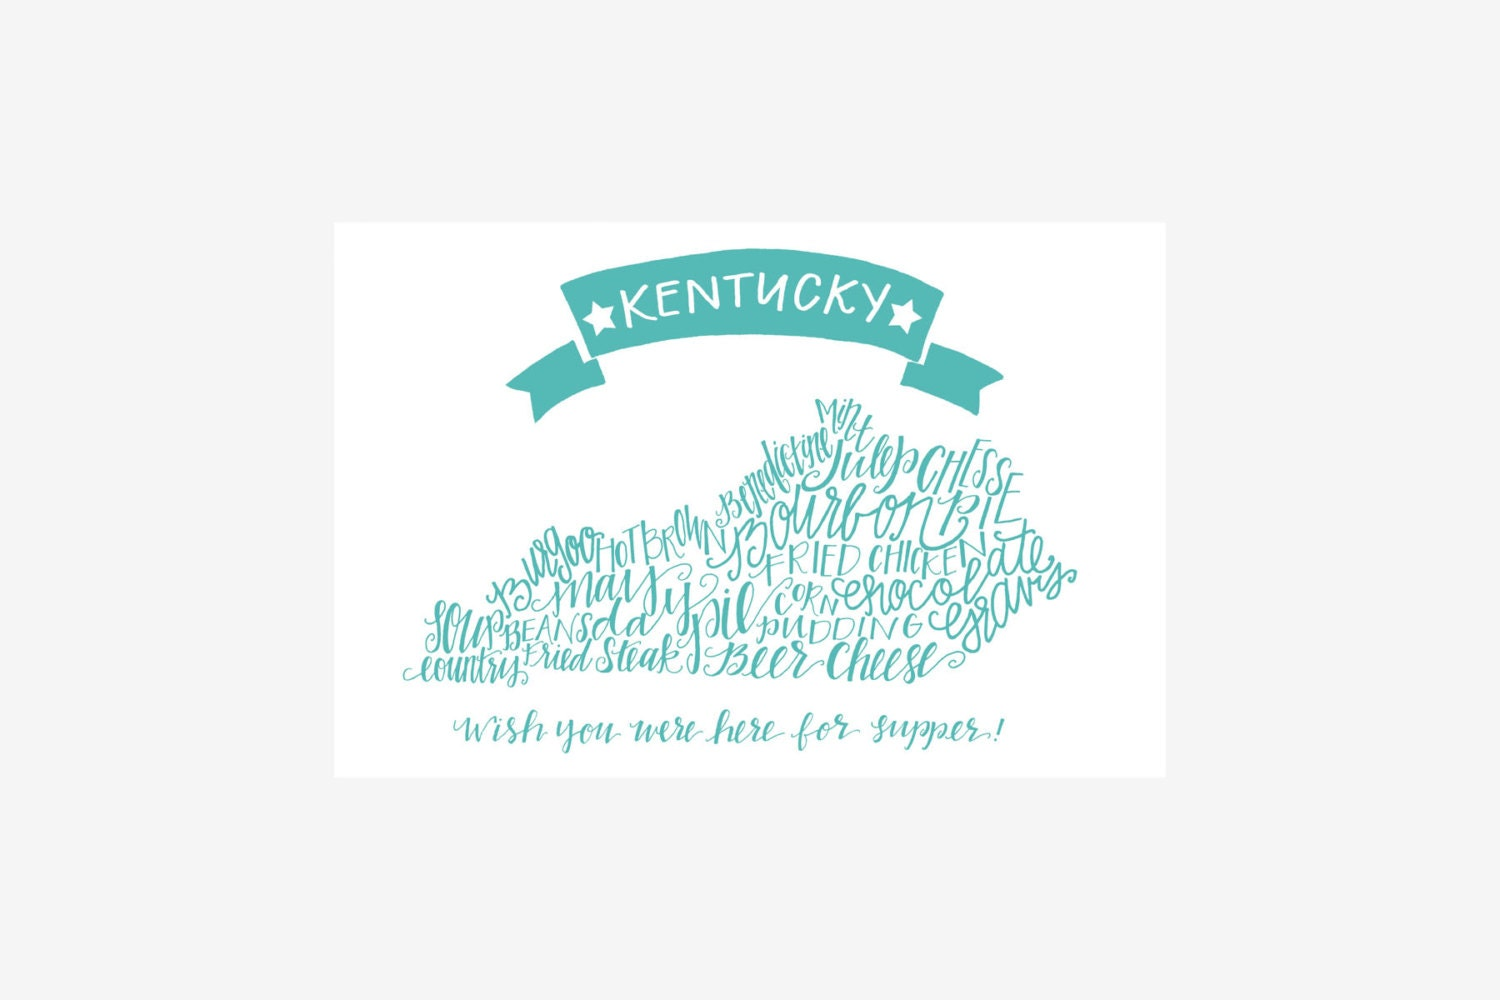 Kentucky Postcard, Southern Foods, Wish you were here for supper!, Aqua  postcard